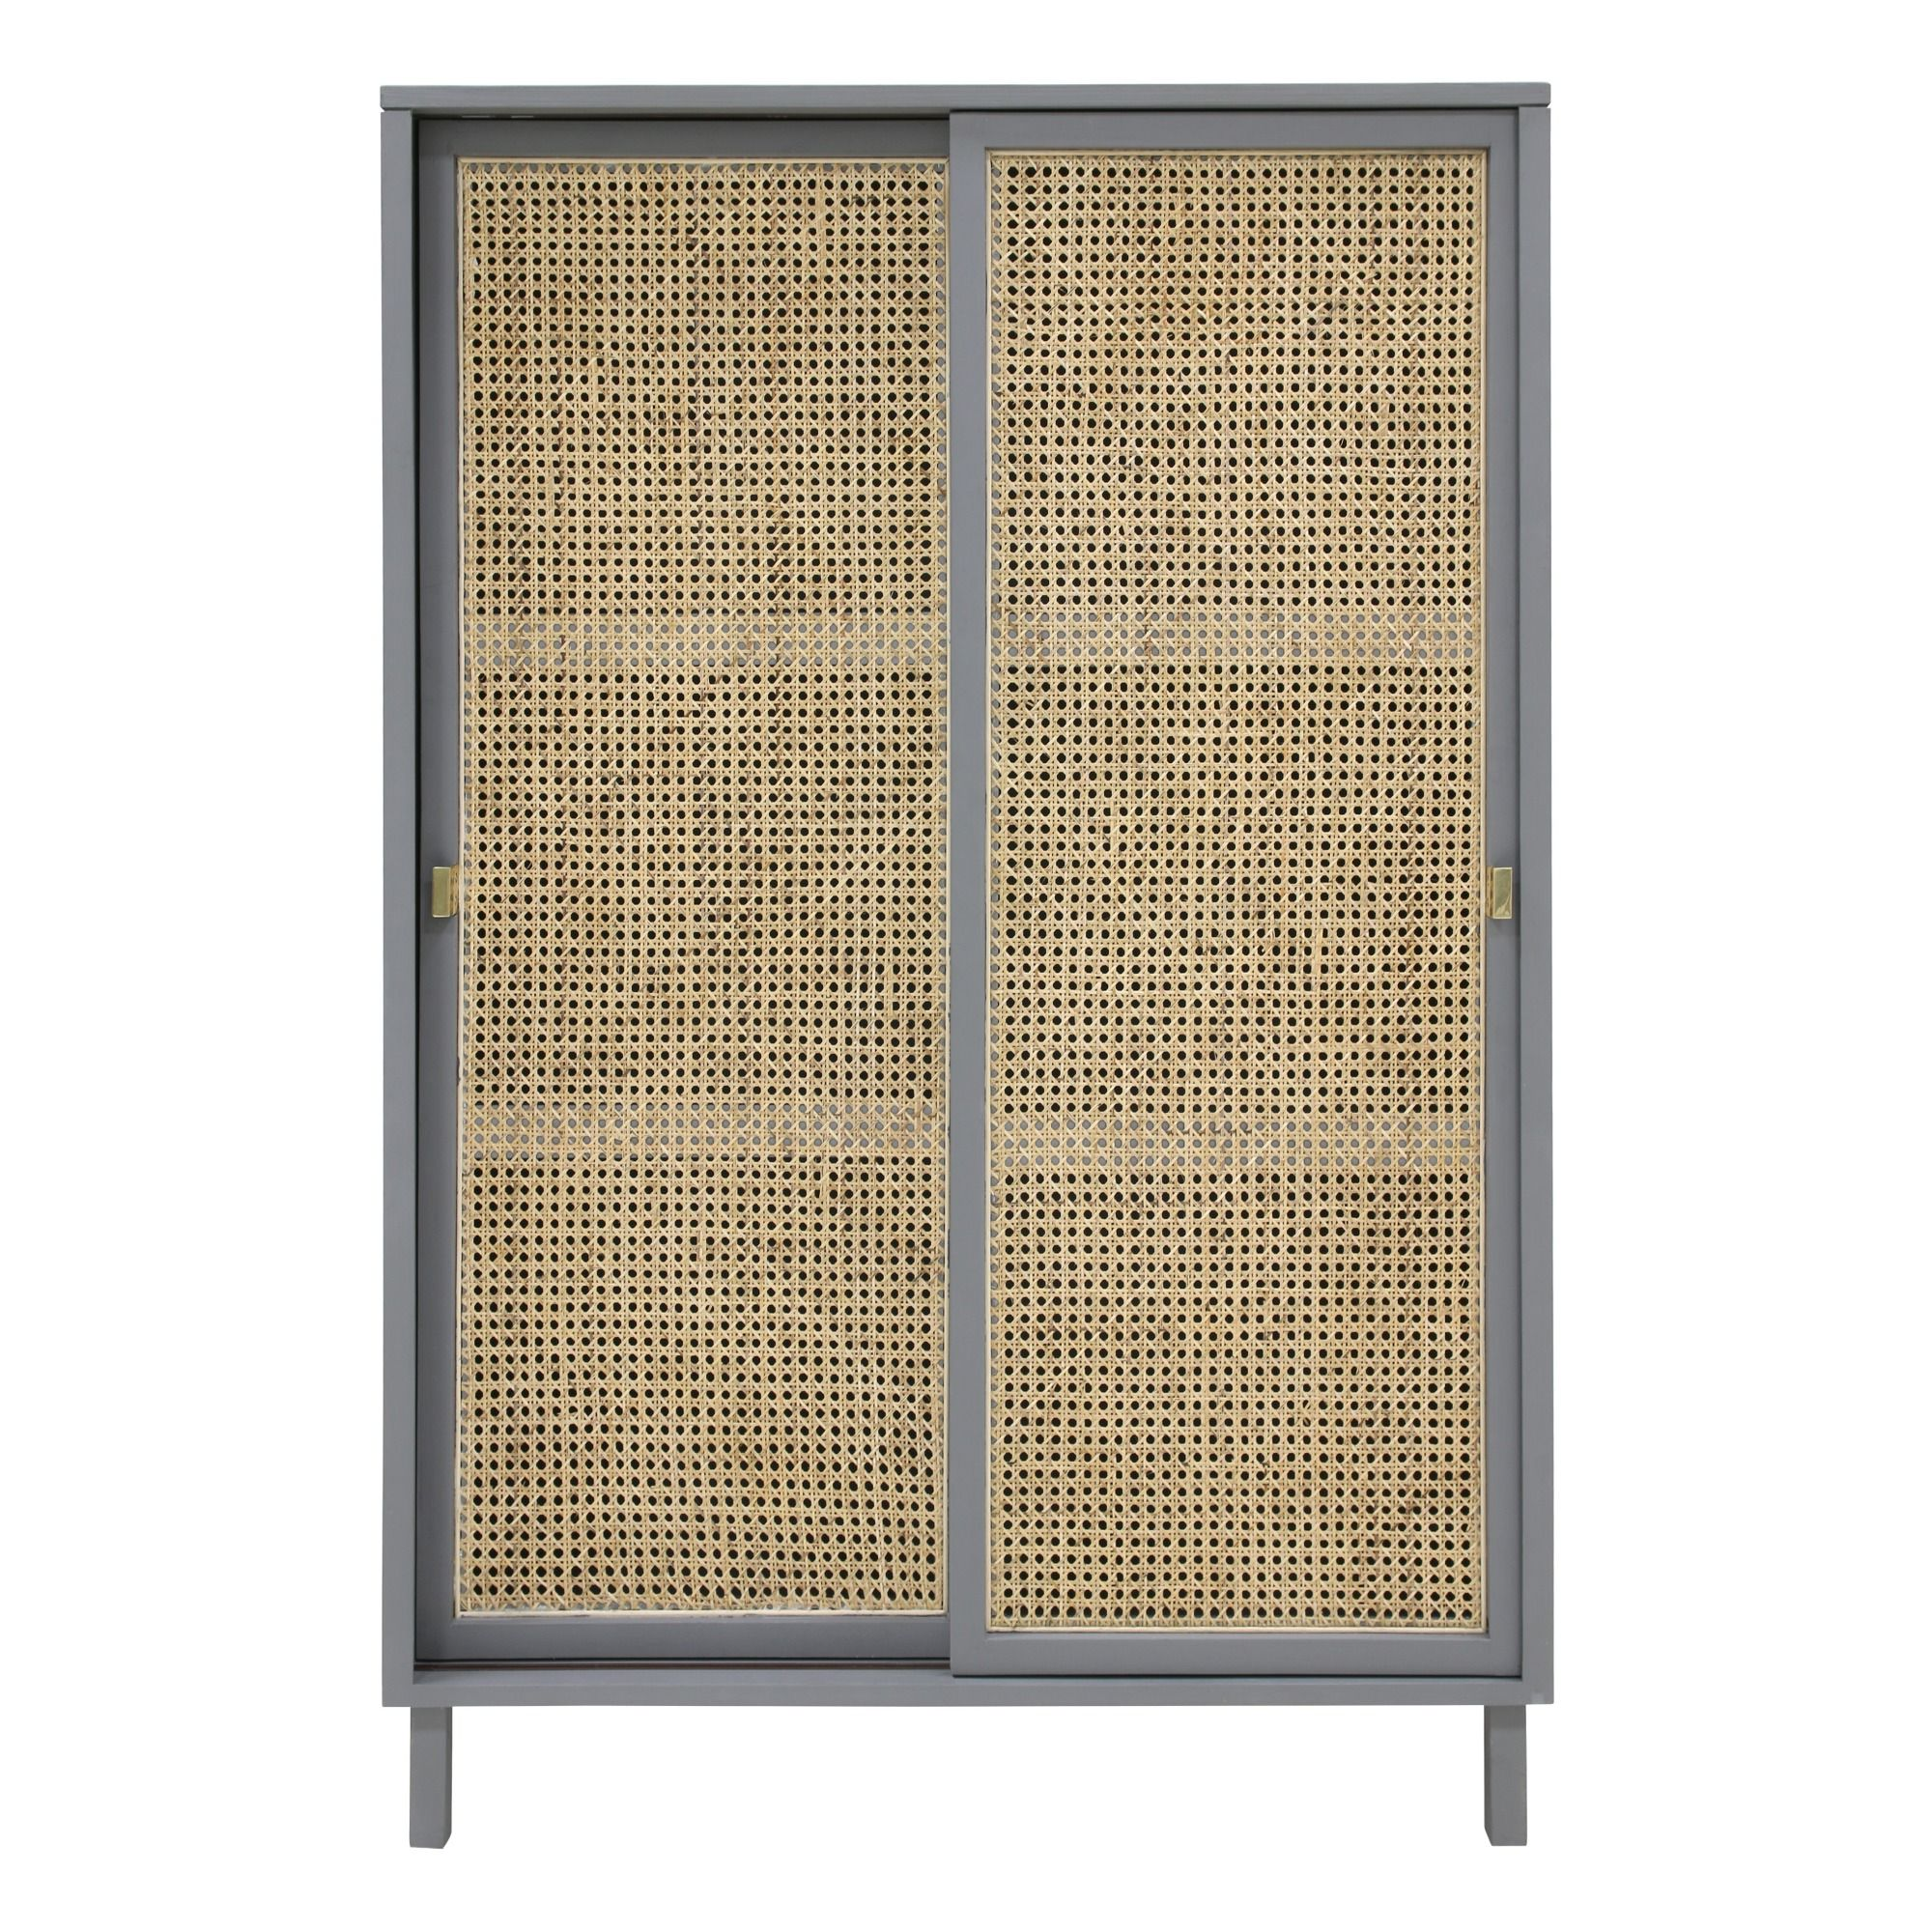 Armoire With Cane Webbing Doors Wooden Cabinets Furniture